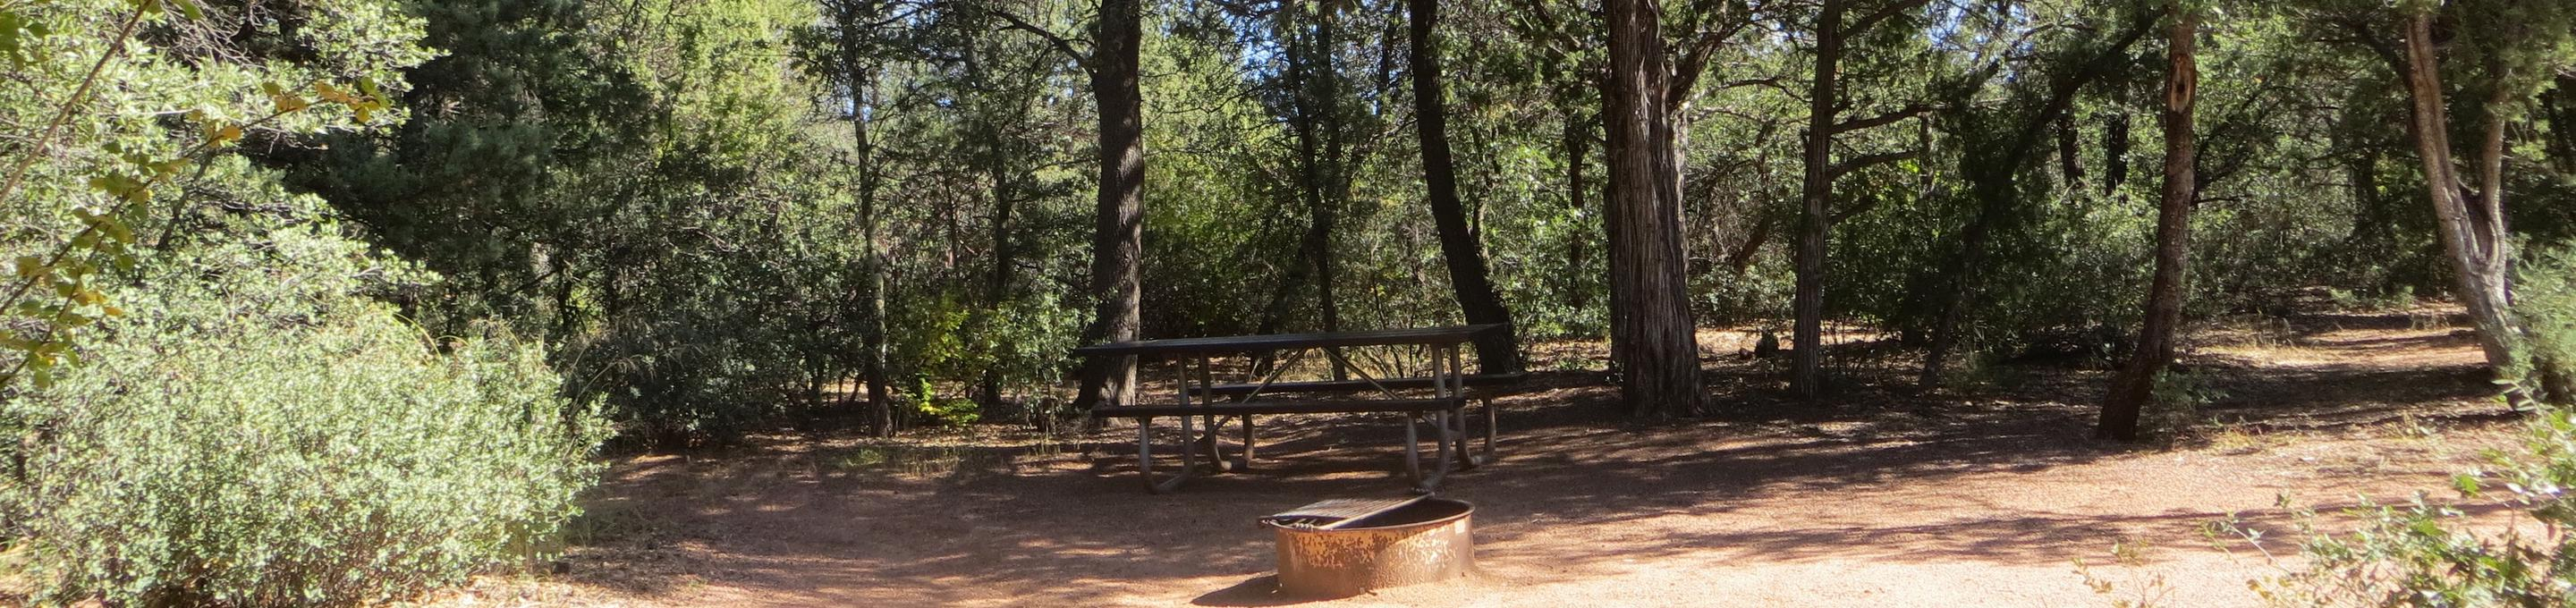 Houston Mesa, Horse Camp site #15 featuring shaded picnic area.